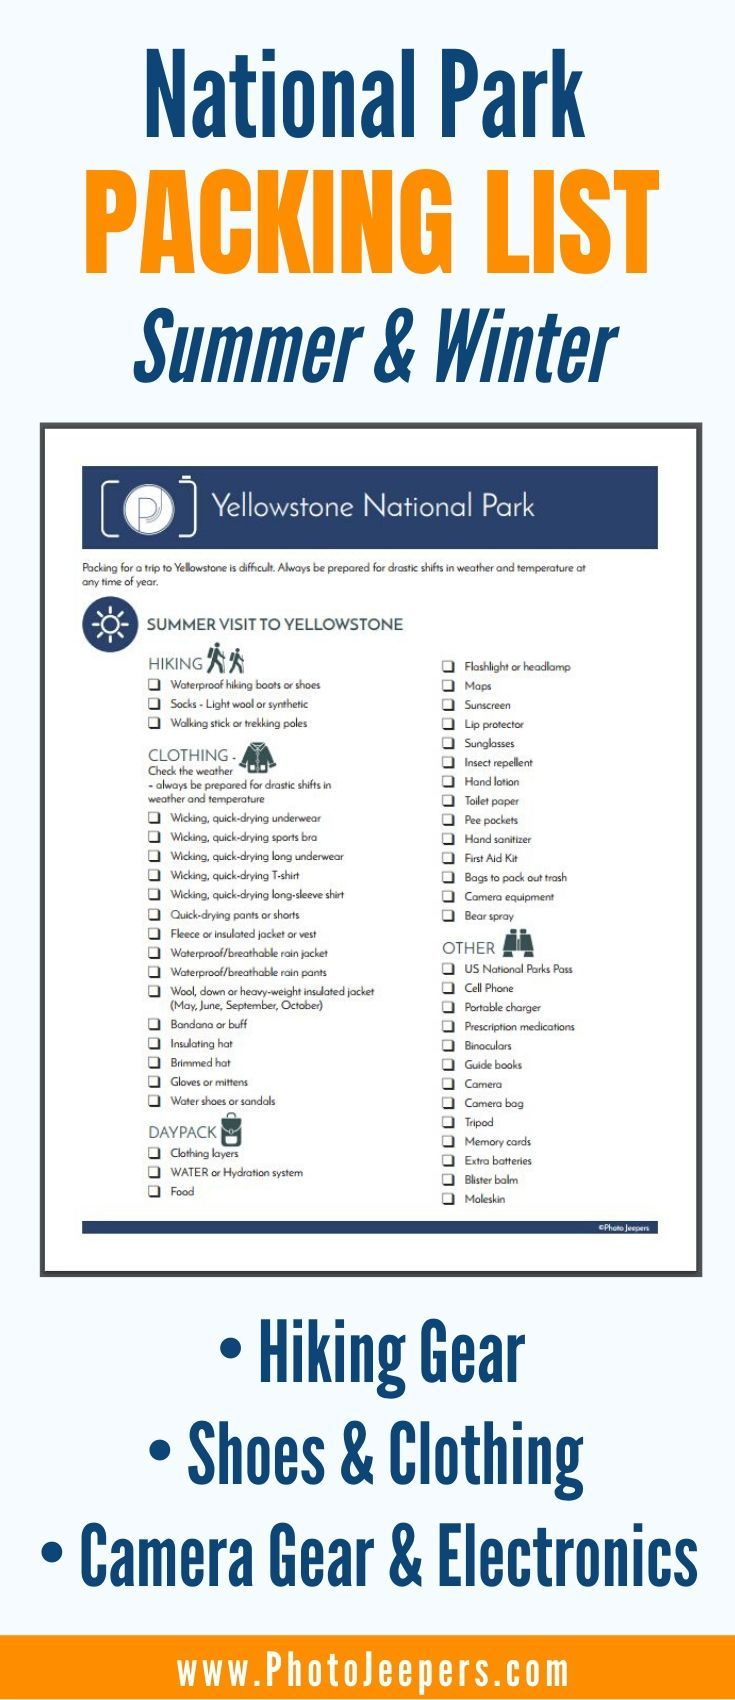 Us National Park Packing List For Summer And Winter Hiking Trip Packing Yellowstone National Park Vacation Us National Park